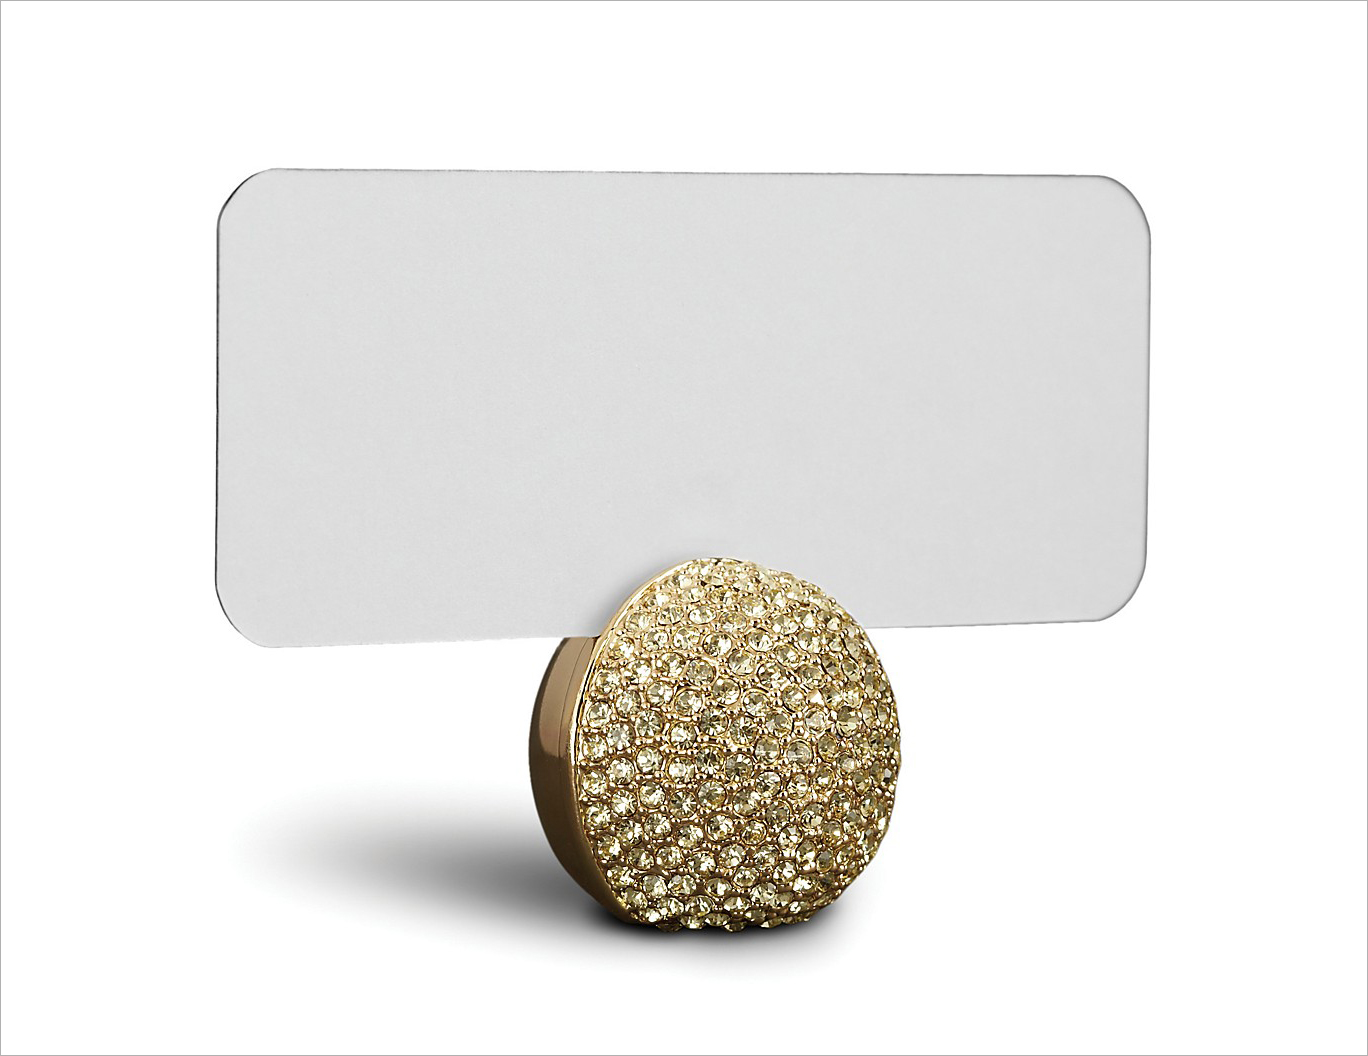 Gold crystal pave sphere place card holder l'objet bloomingdale's fancy wedding party event accessories ideas